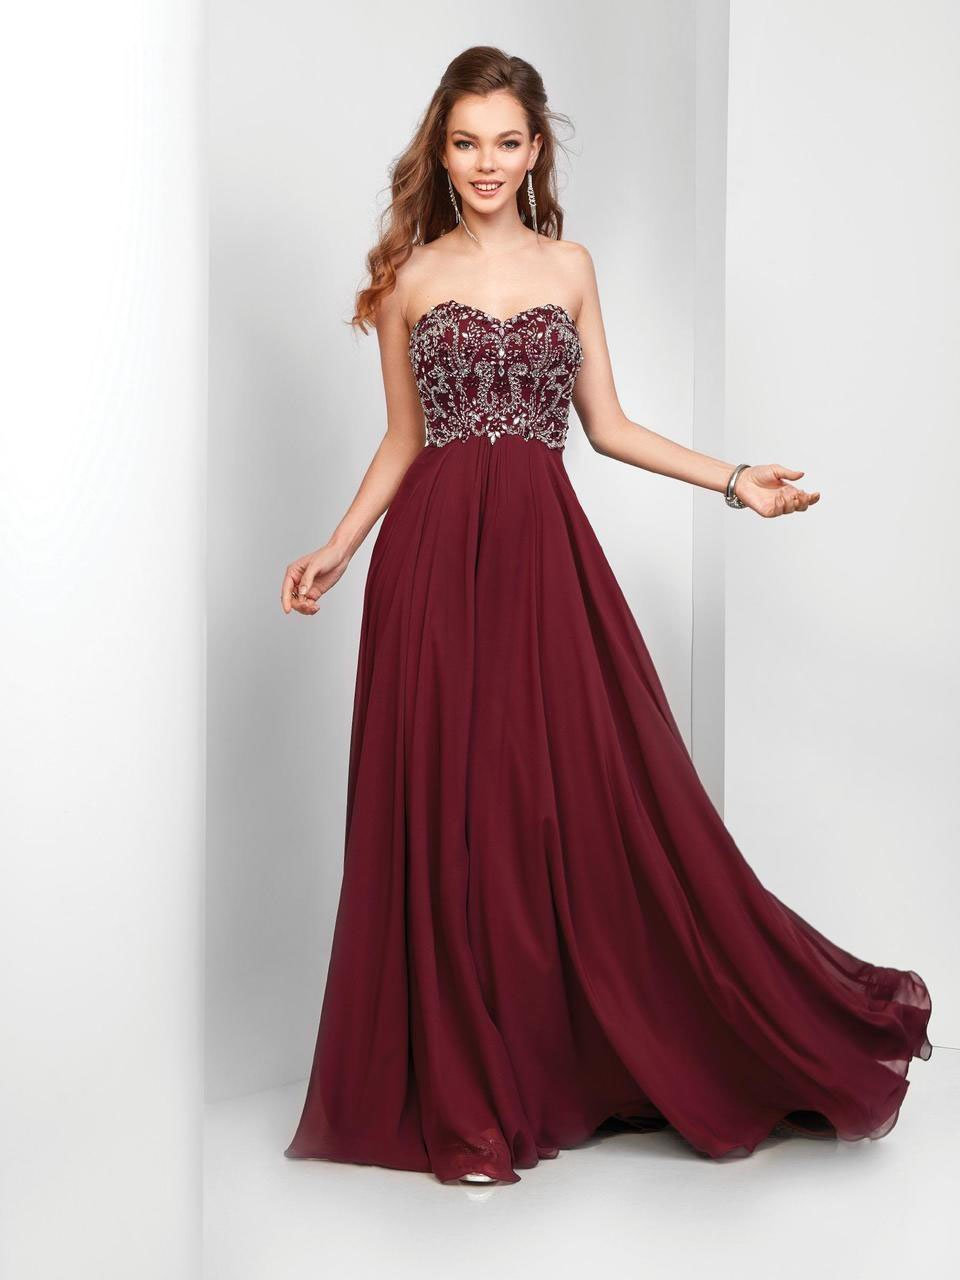 Clarisse - 3472 Strapless Paisley Motif Chiffon Gown in Red